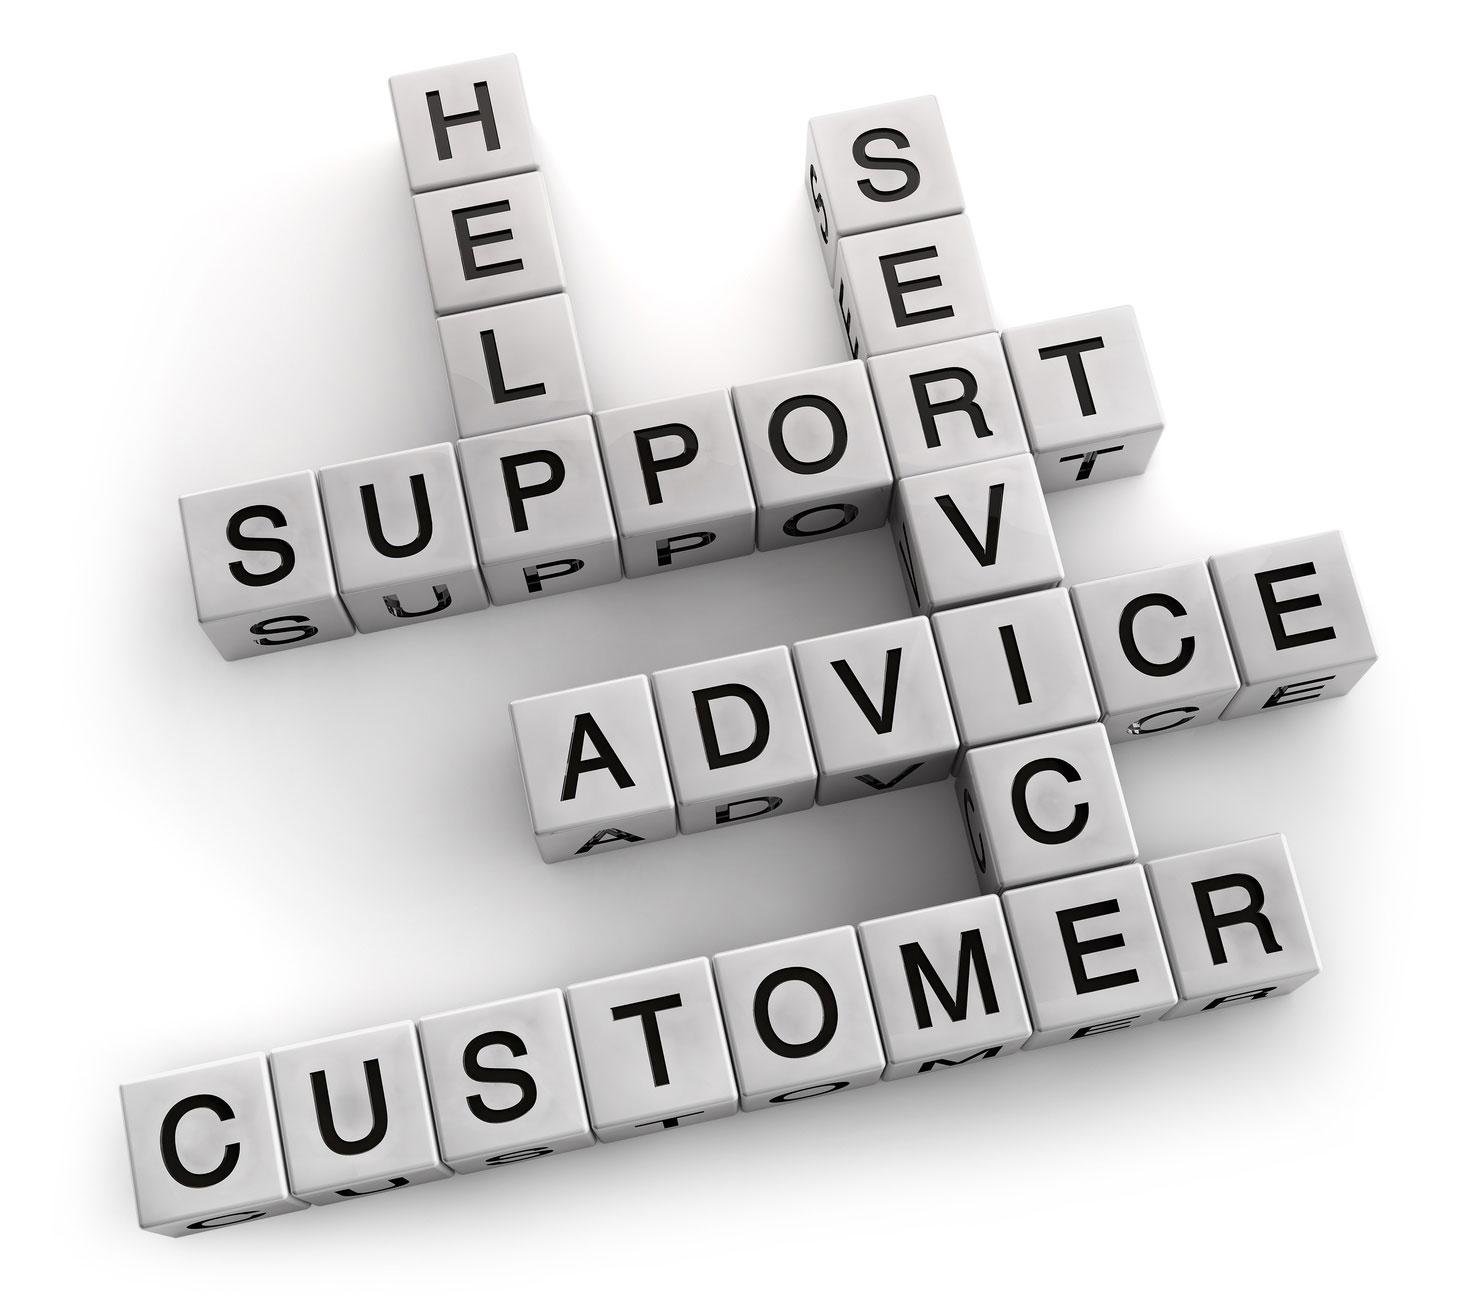 Stations quote: Client, Advice, Service, Help